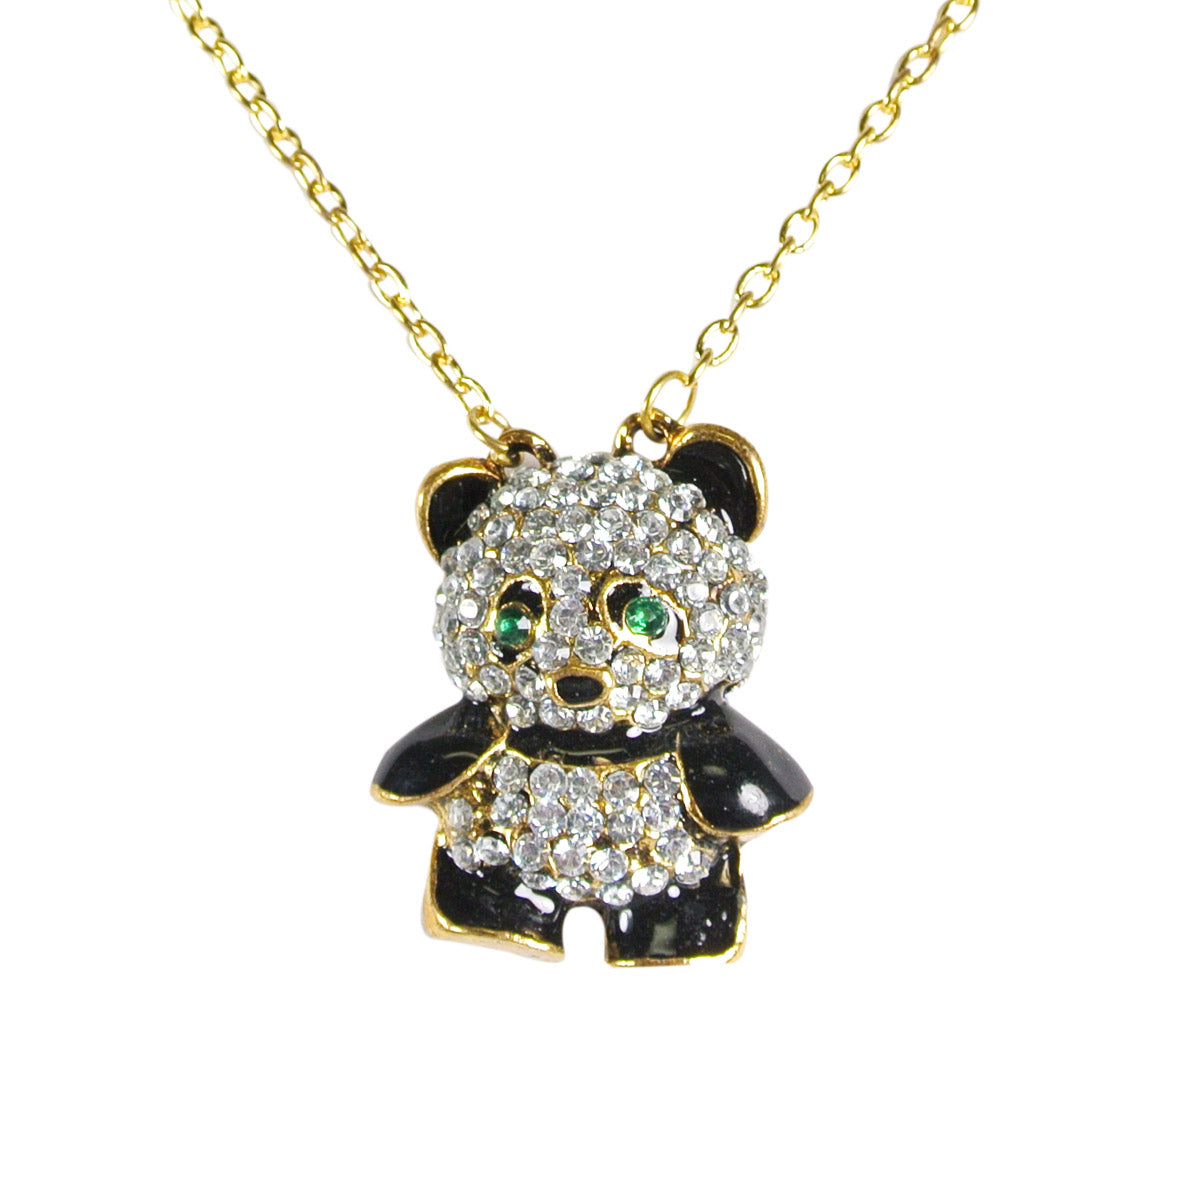 Crystal Rhinestone Panda Bear Pendant Necklace